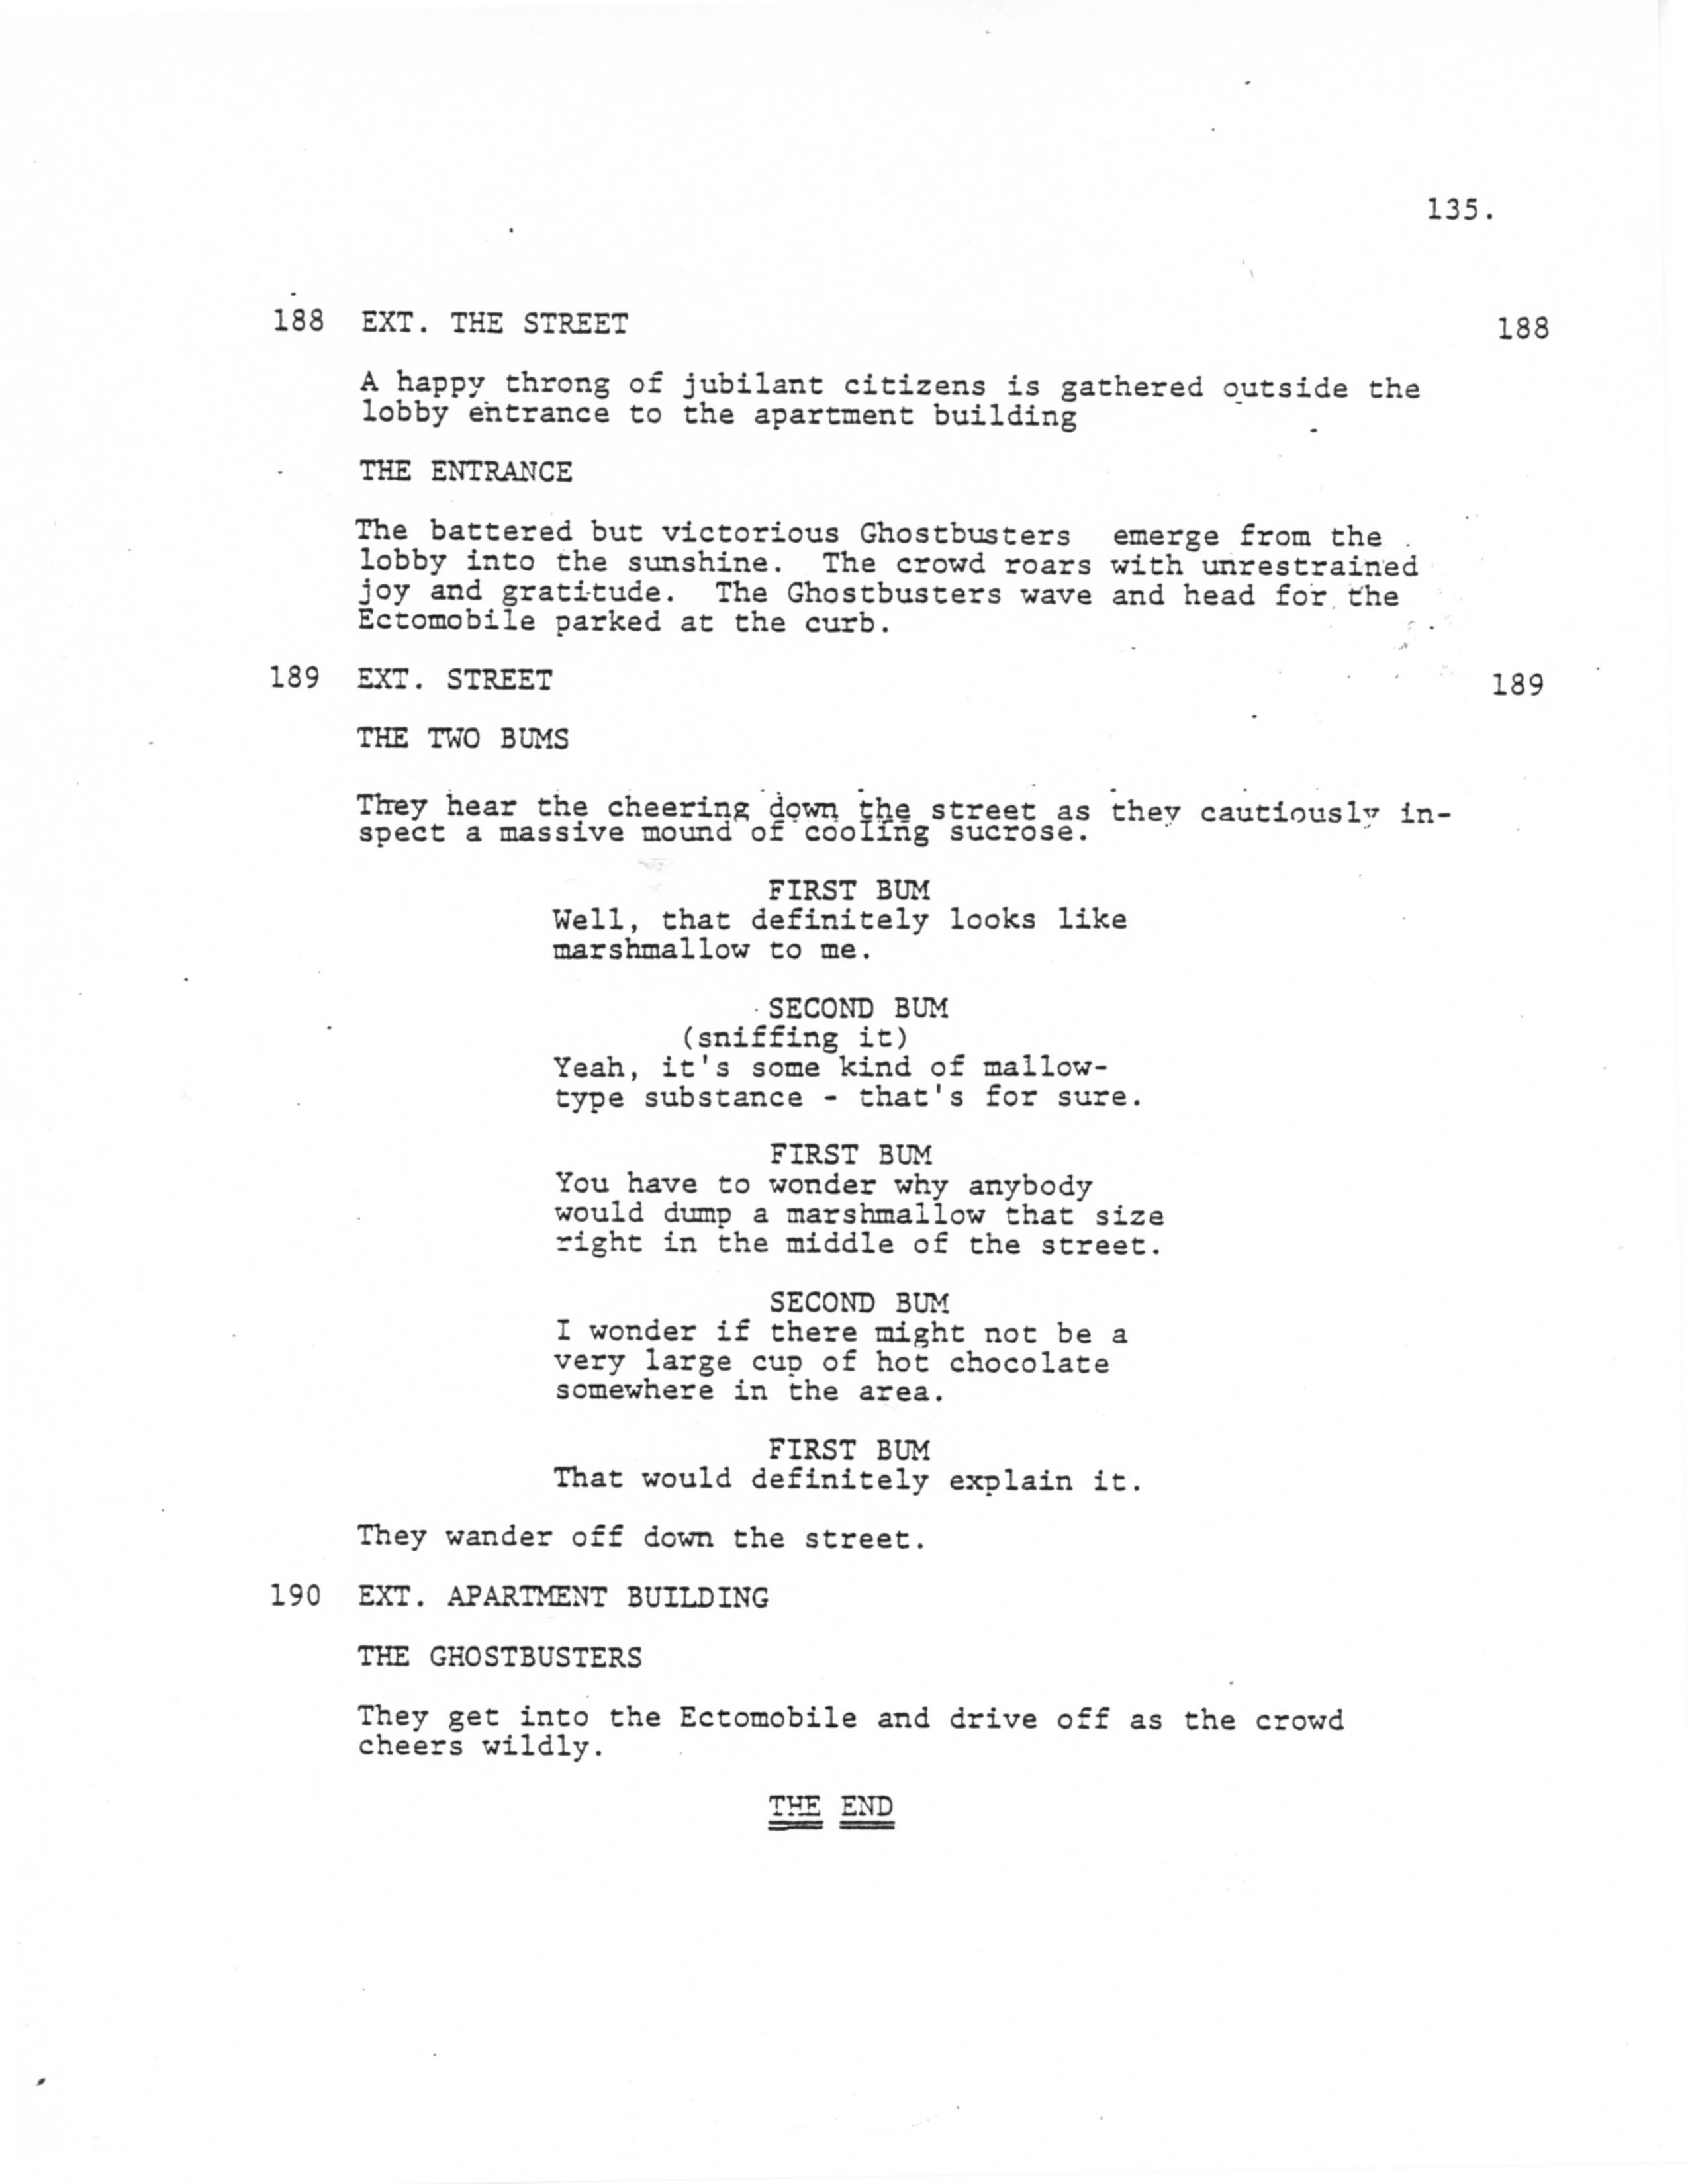 from an early screenplay draft